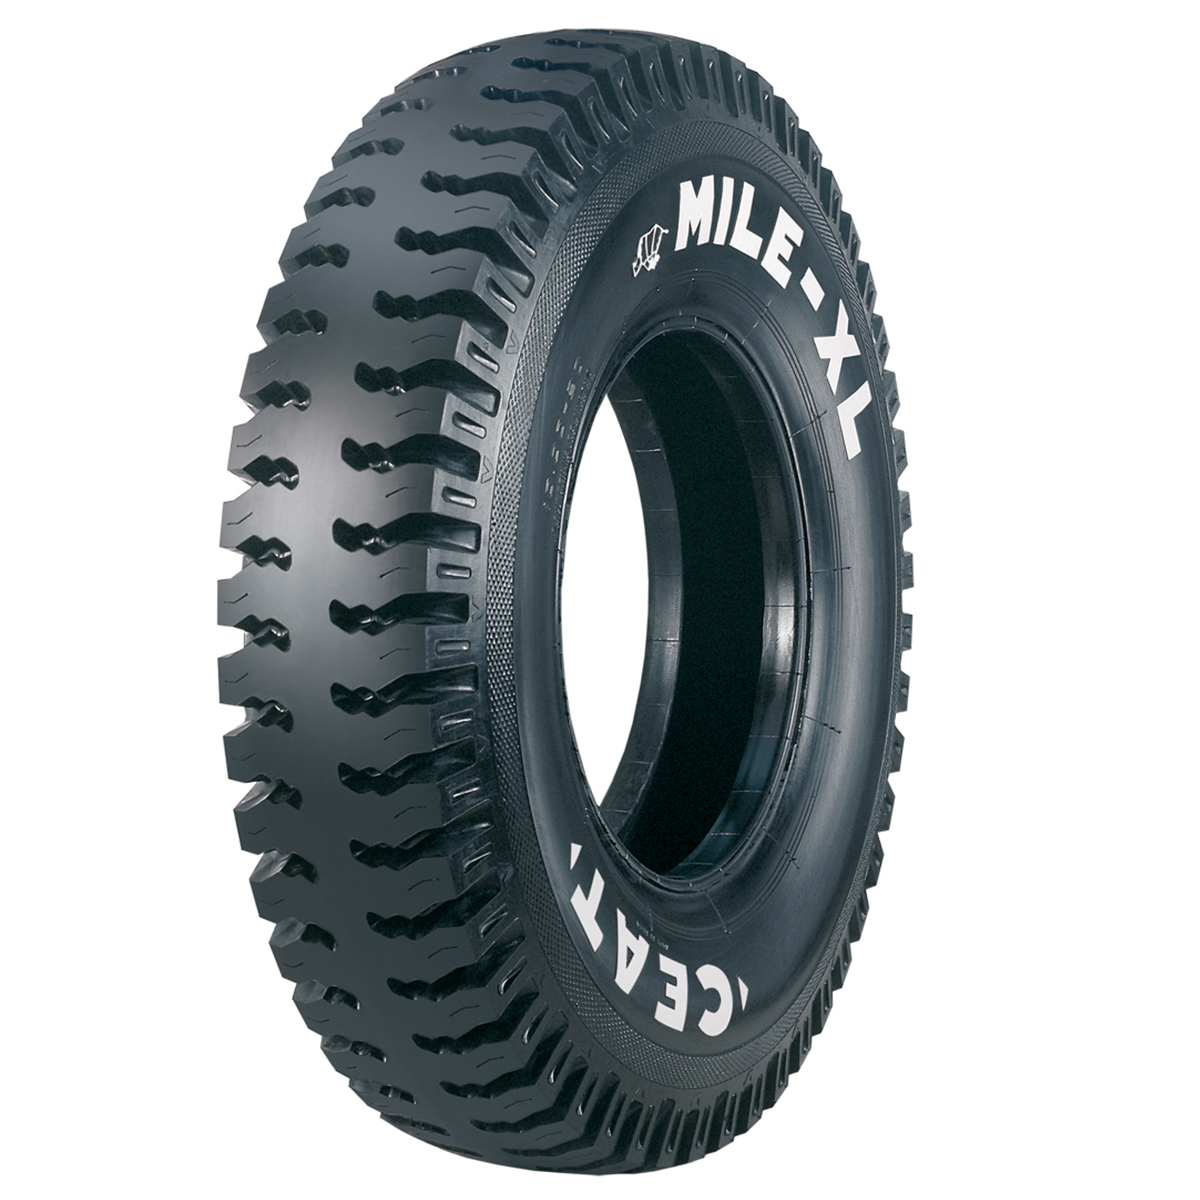 CEAT MILE XL RIB 185/ R 14 Requires Tube 88 J Car Tyre